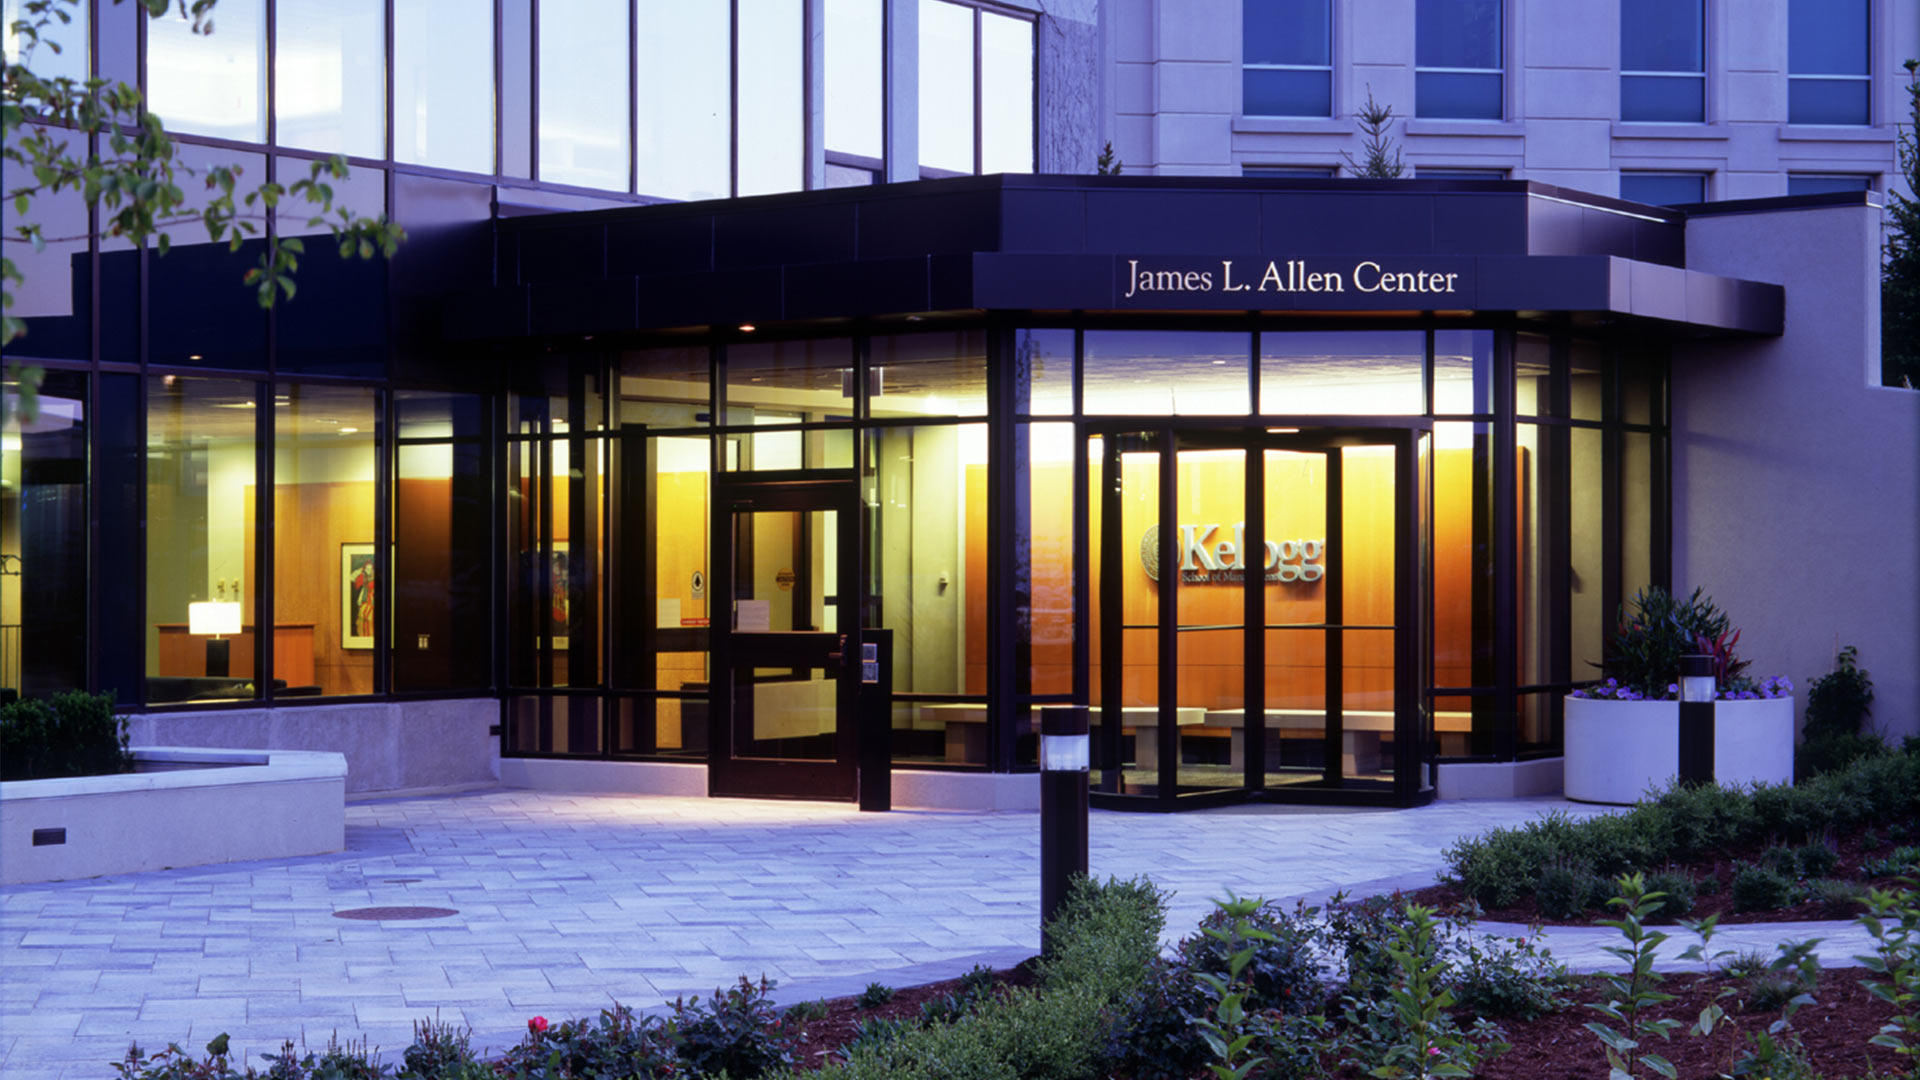 Northwestern University Kellogg Graduate School of Management James L. Allen Center